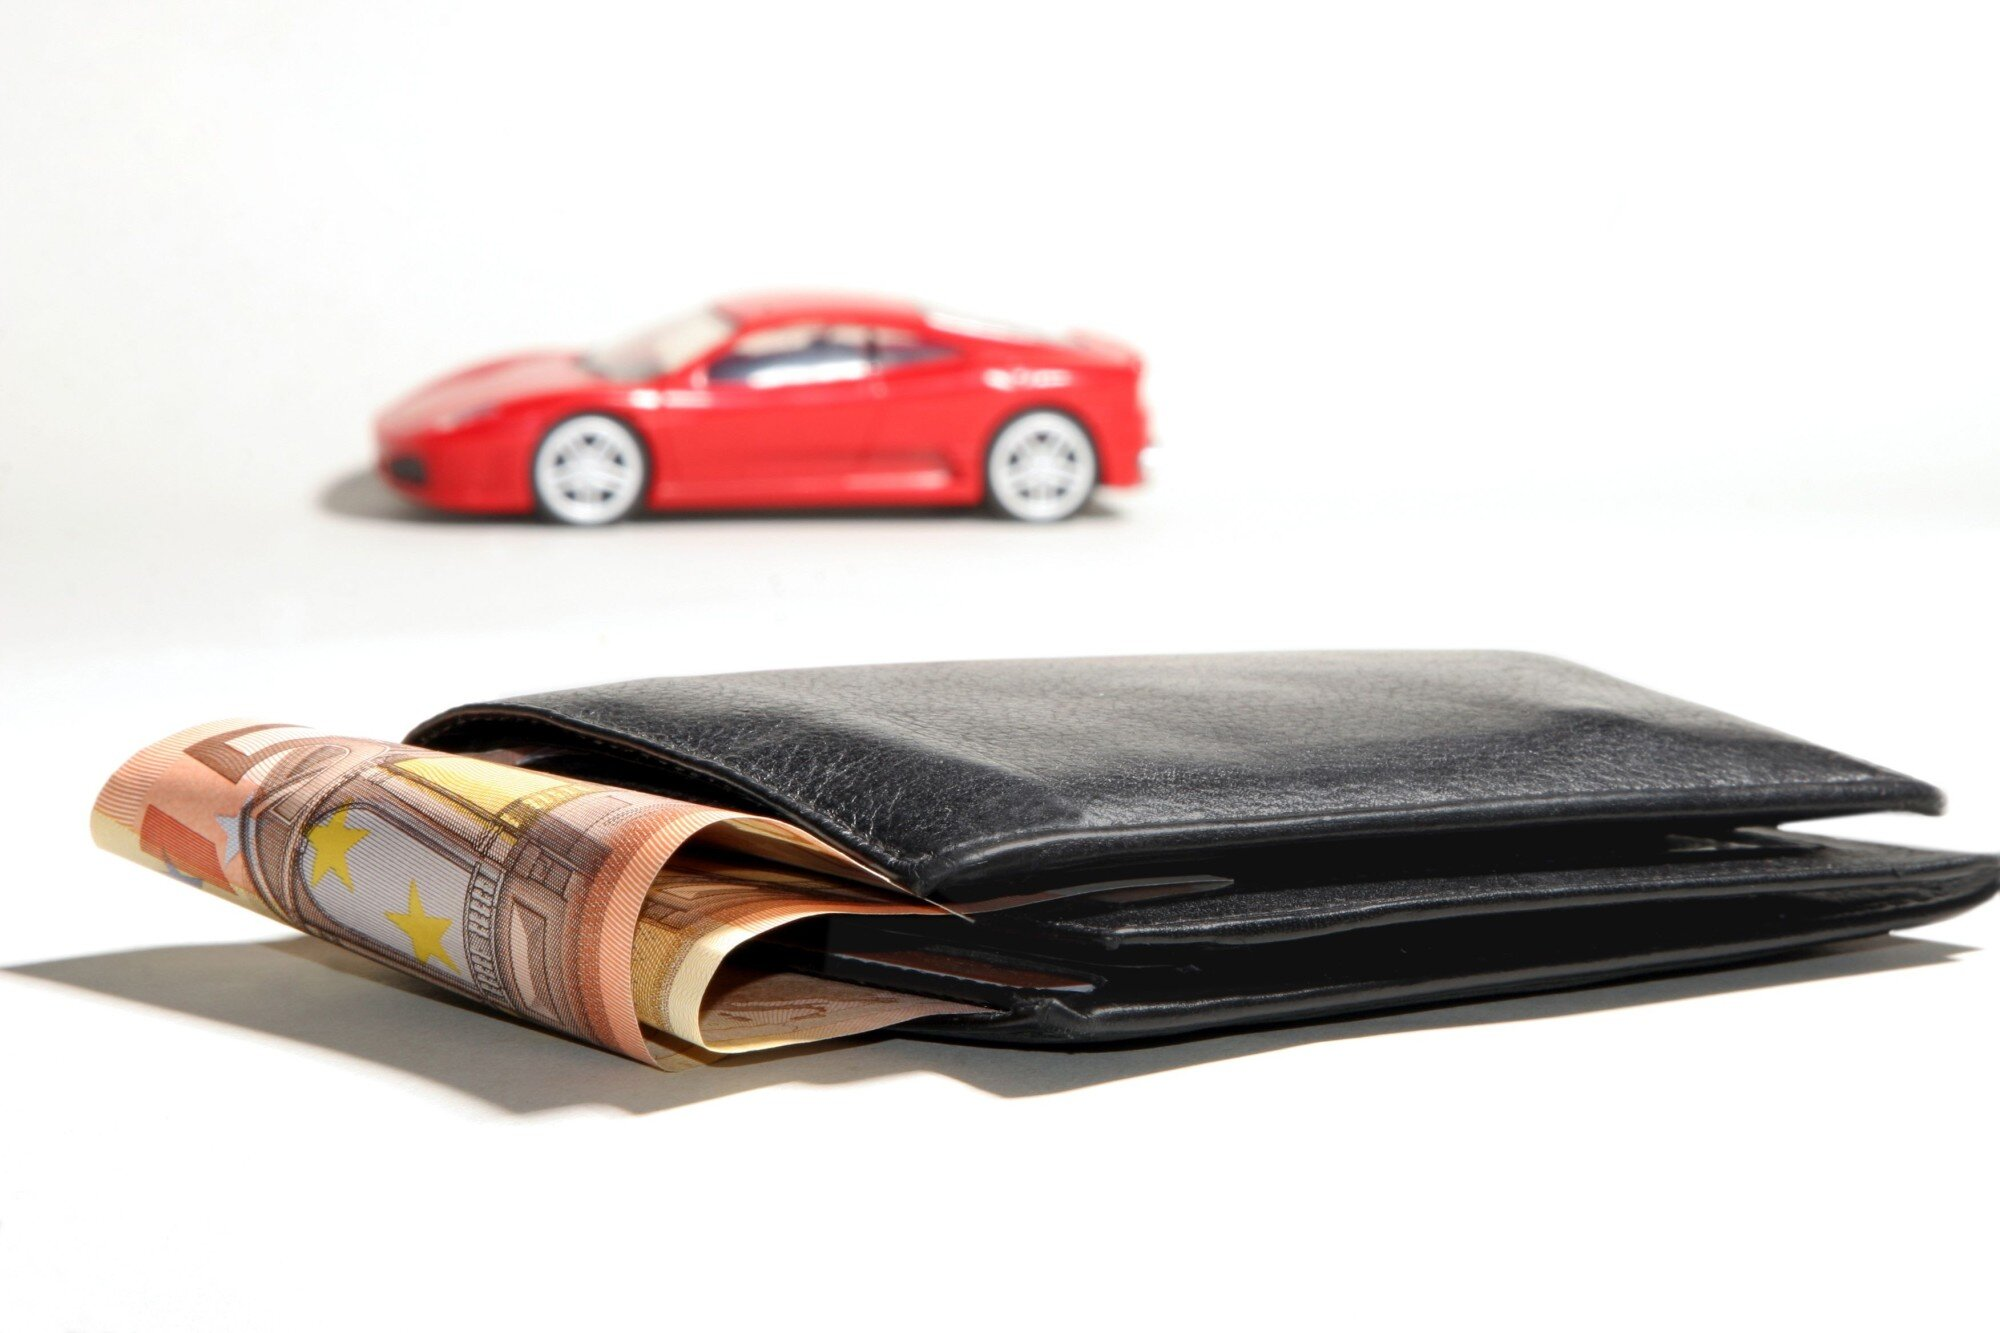 personal loan vs car loan